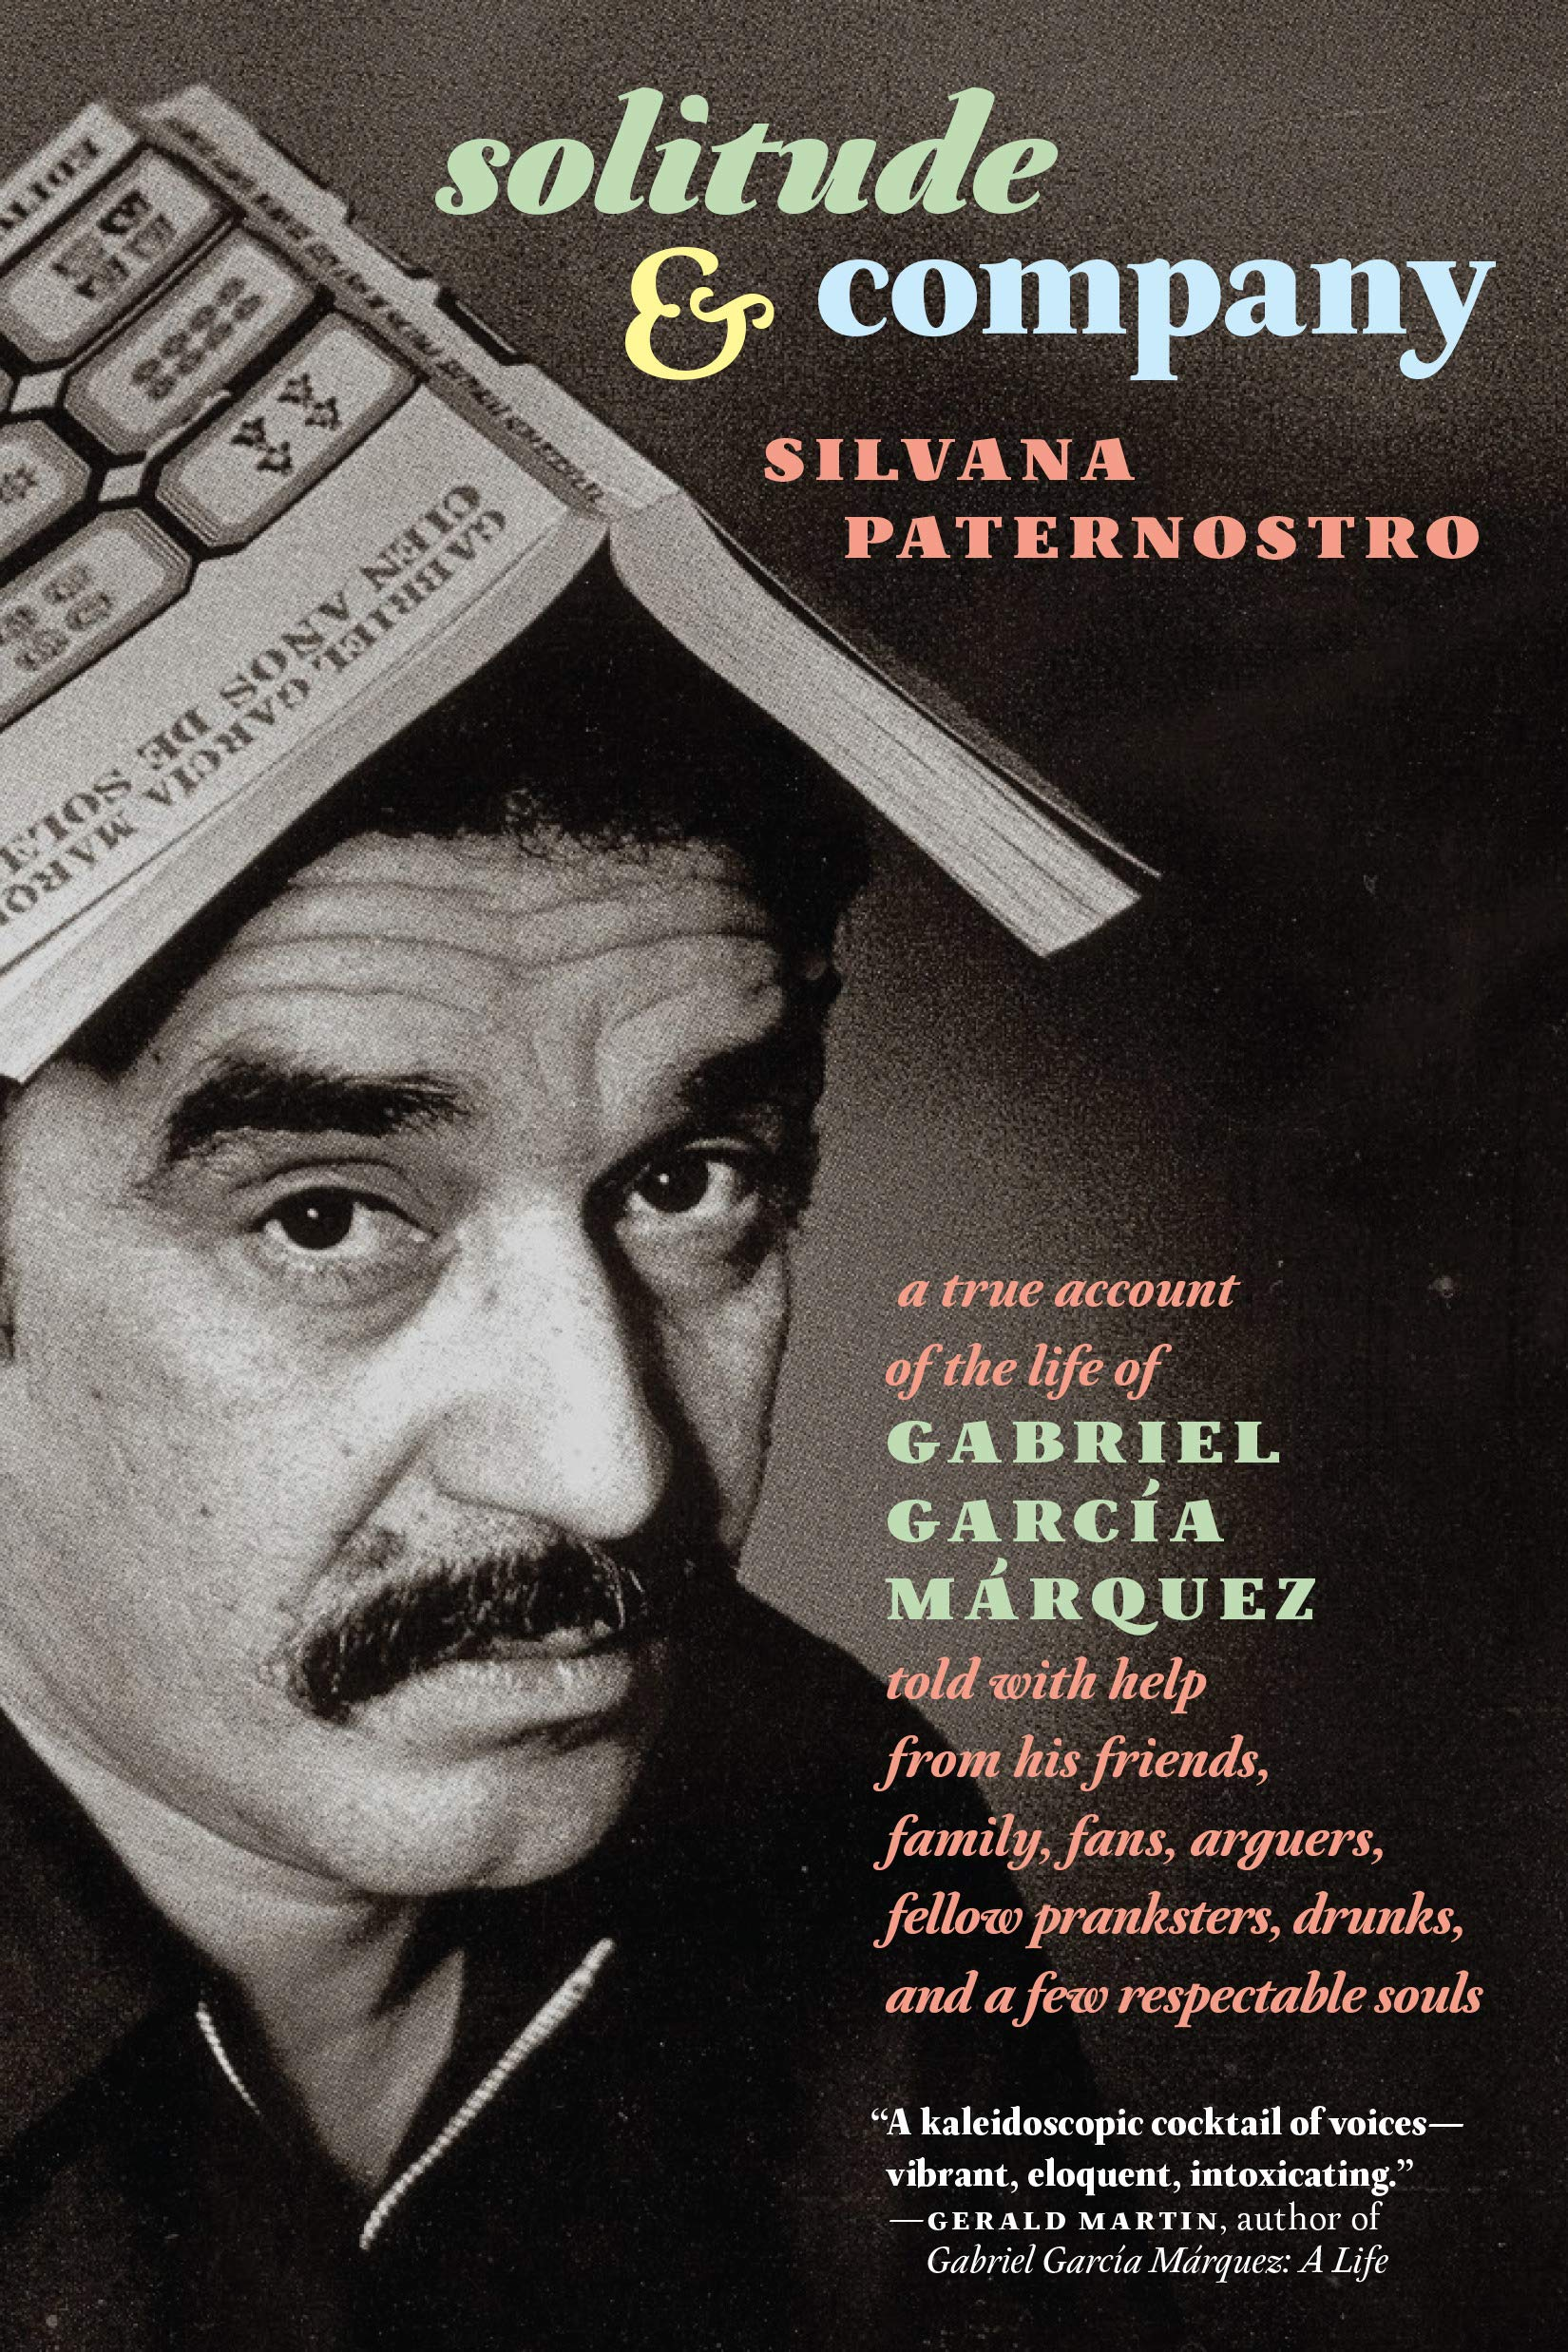 The extraordinary life of Gabriel García Márquez